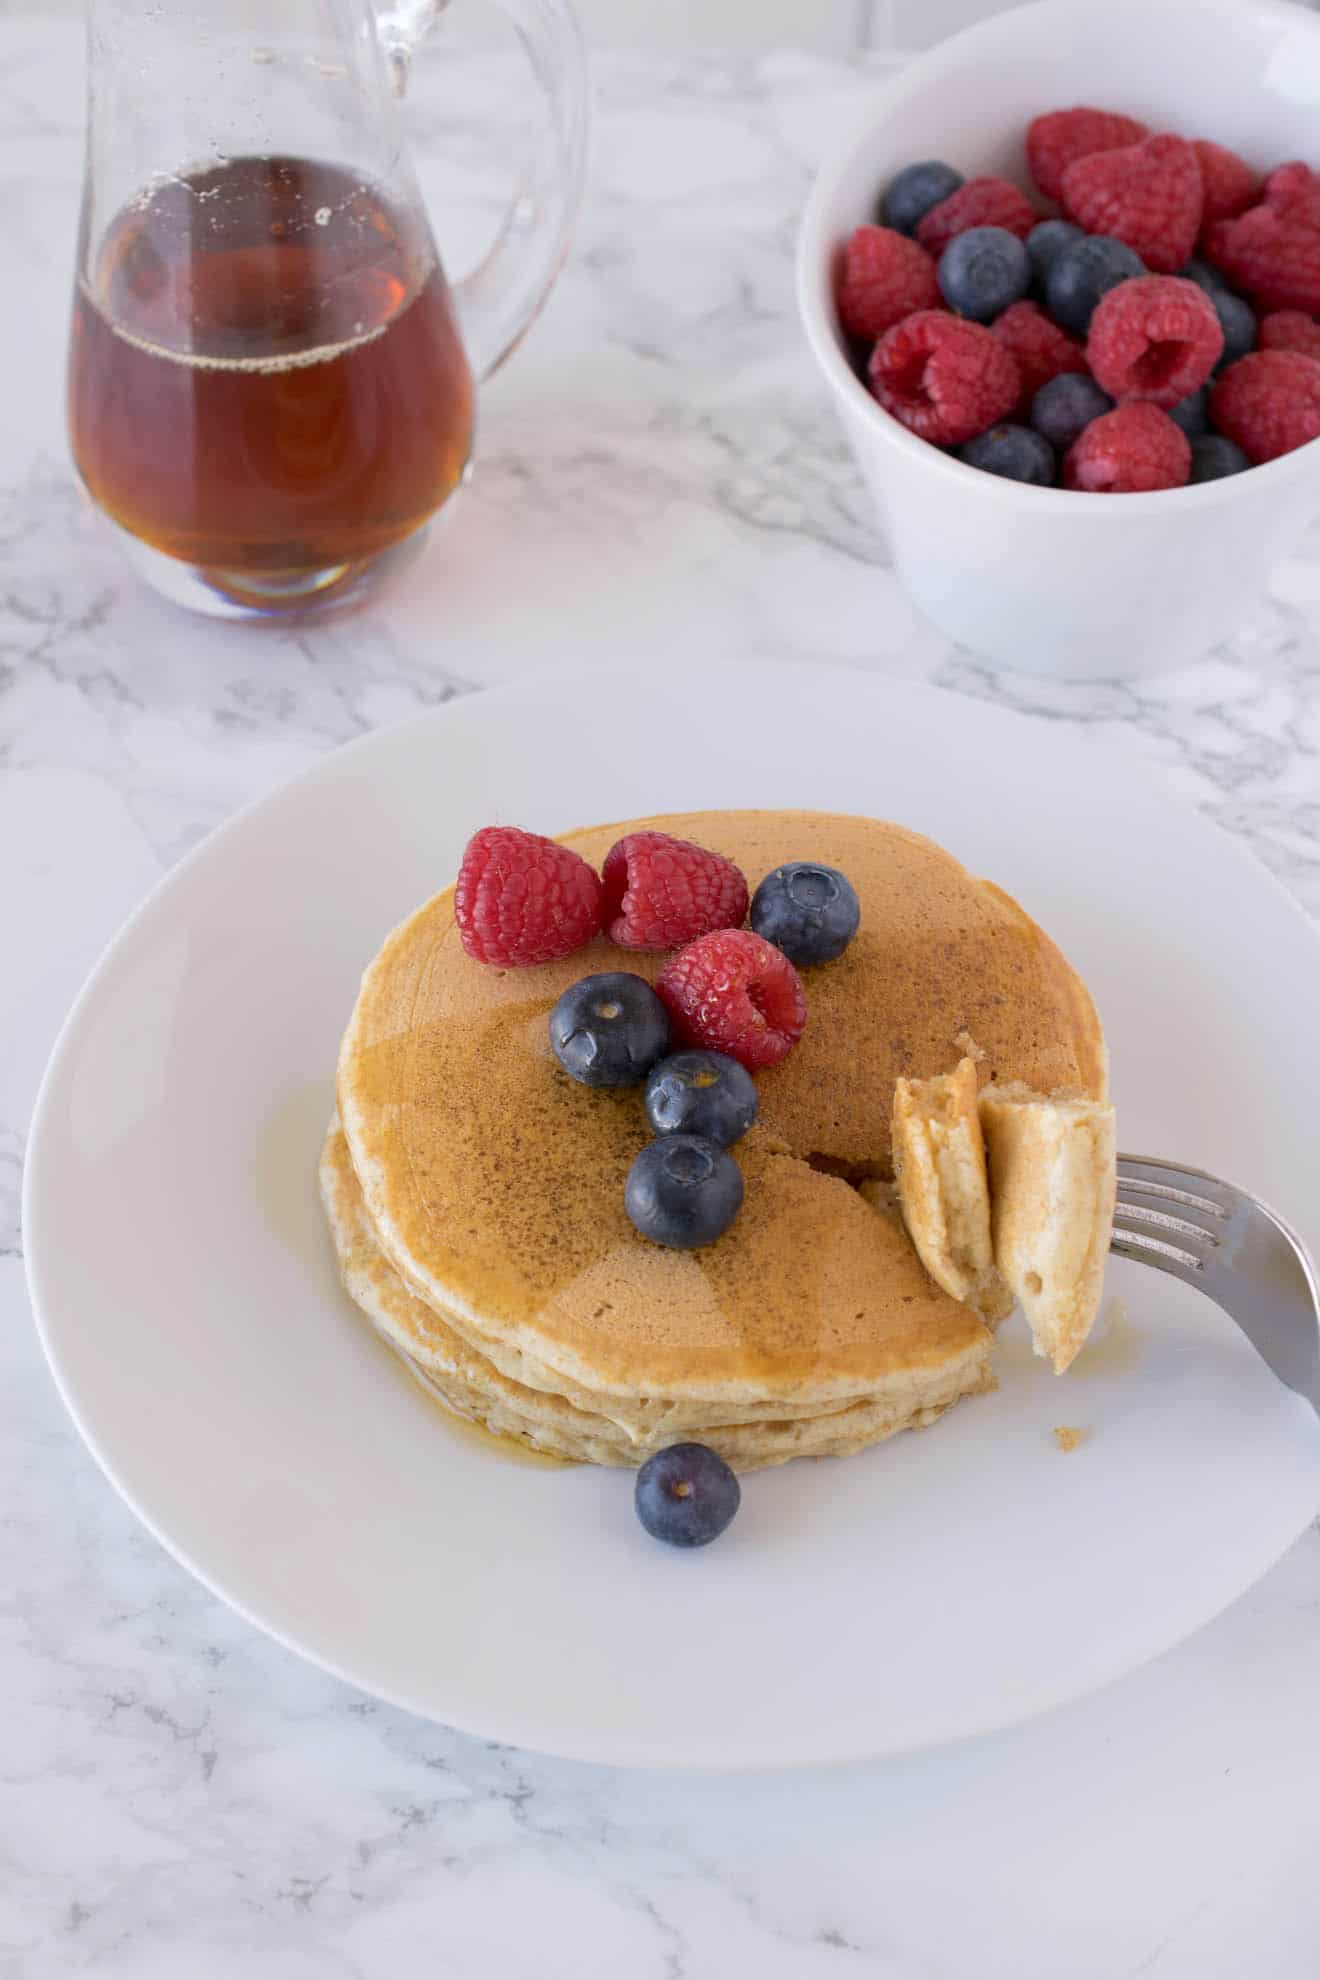 A plate of whole wheat pancakes with a bite taken out with fruit and syrup